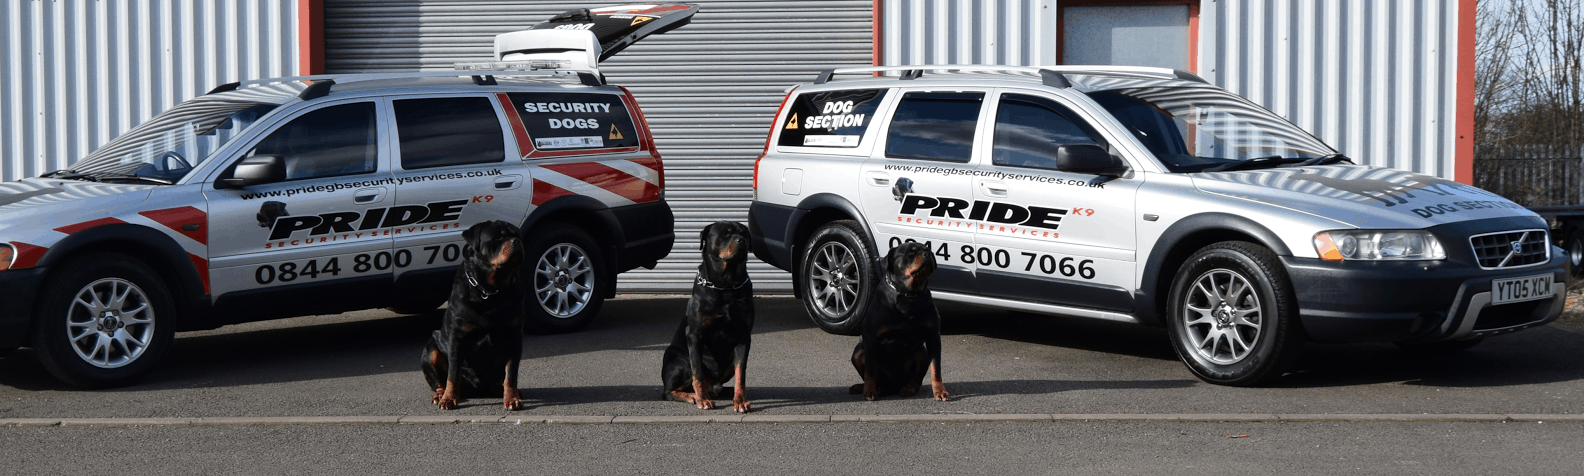 Unit of pride gb security dogs